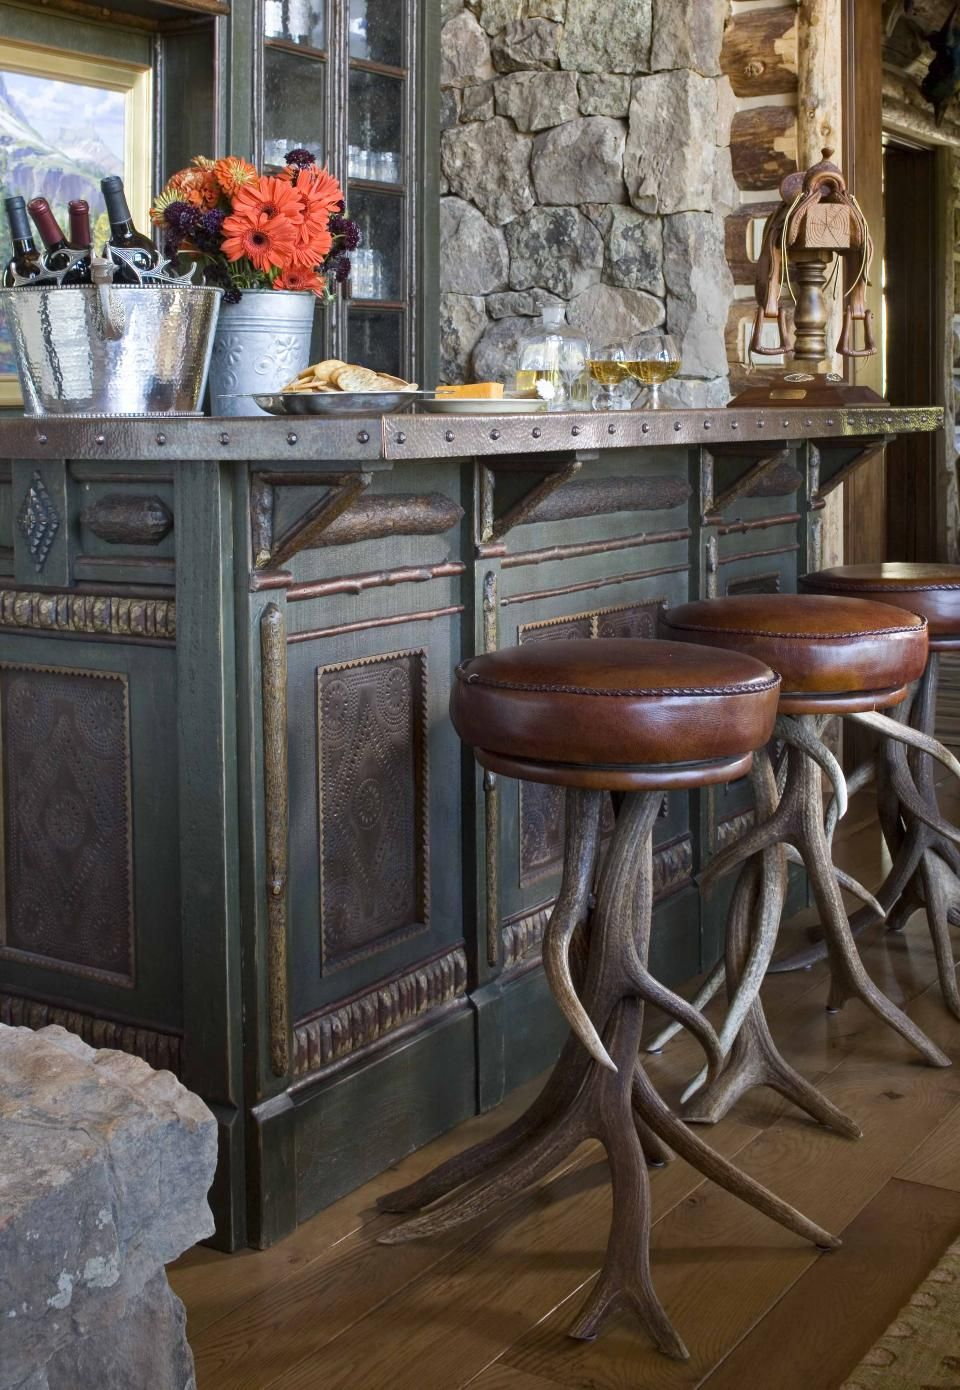 Apres ski?? Stools with antlers - Interior Design photo by Rinfret ...